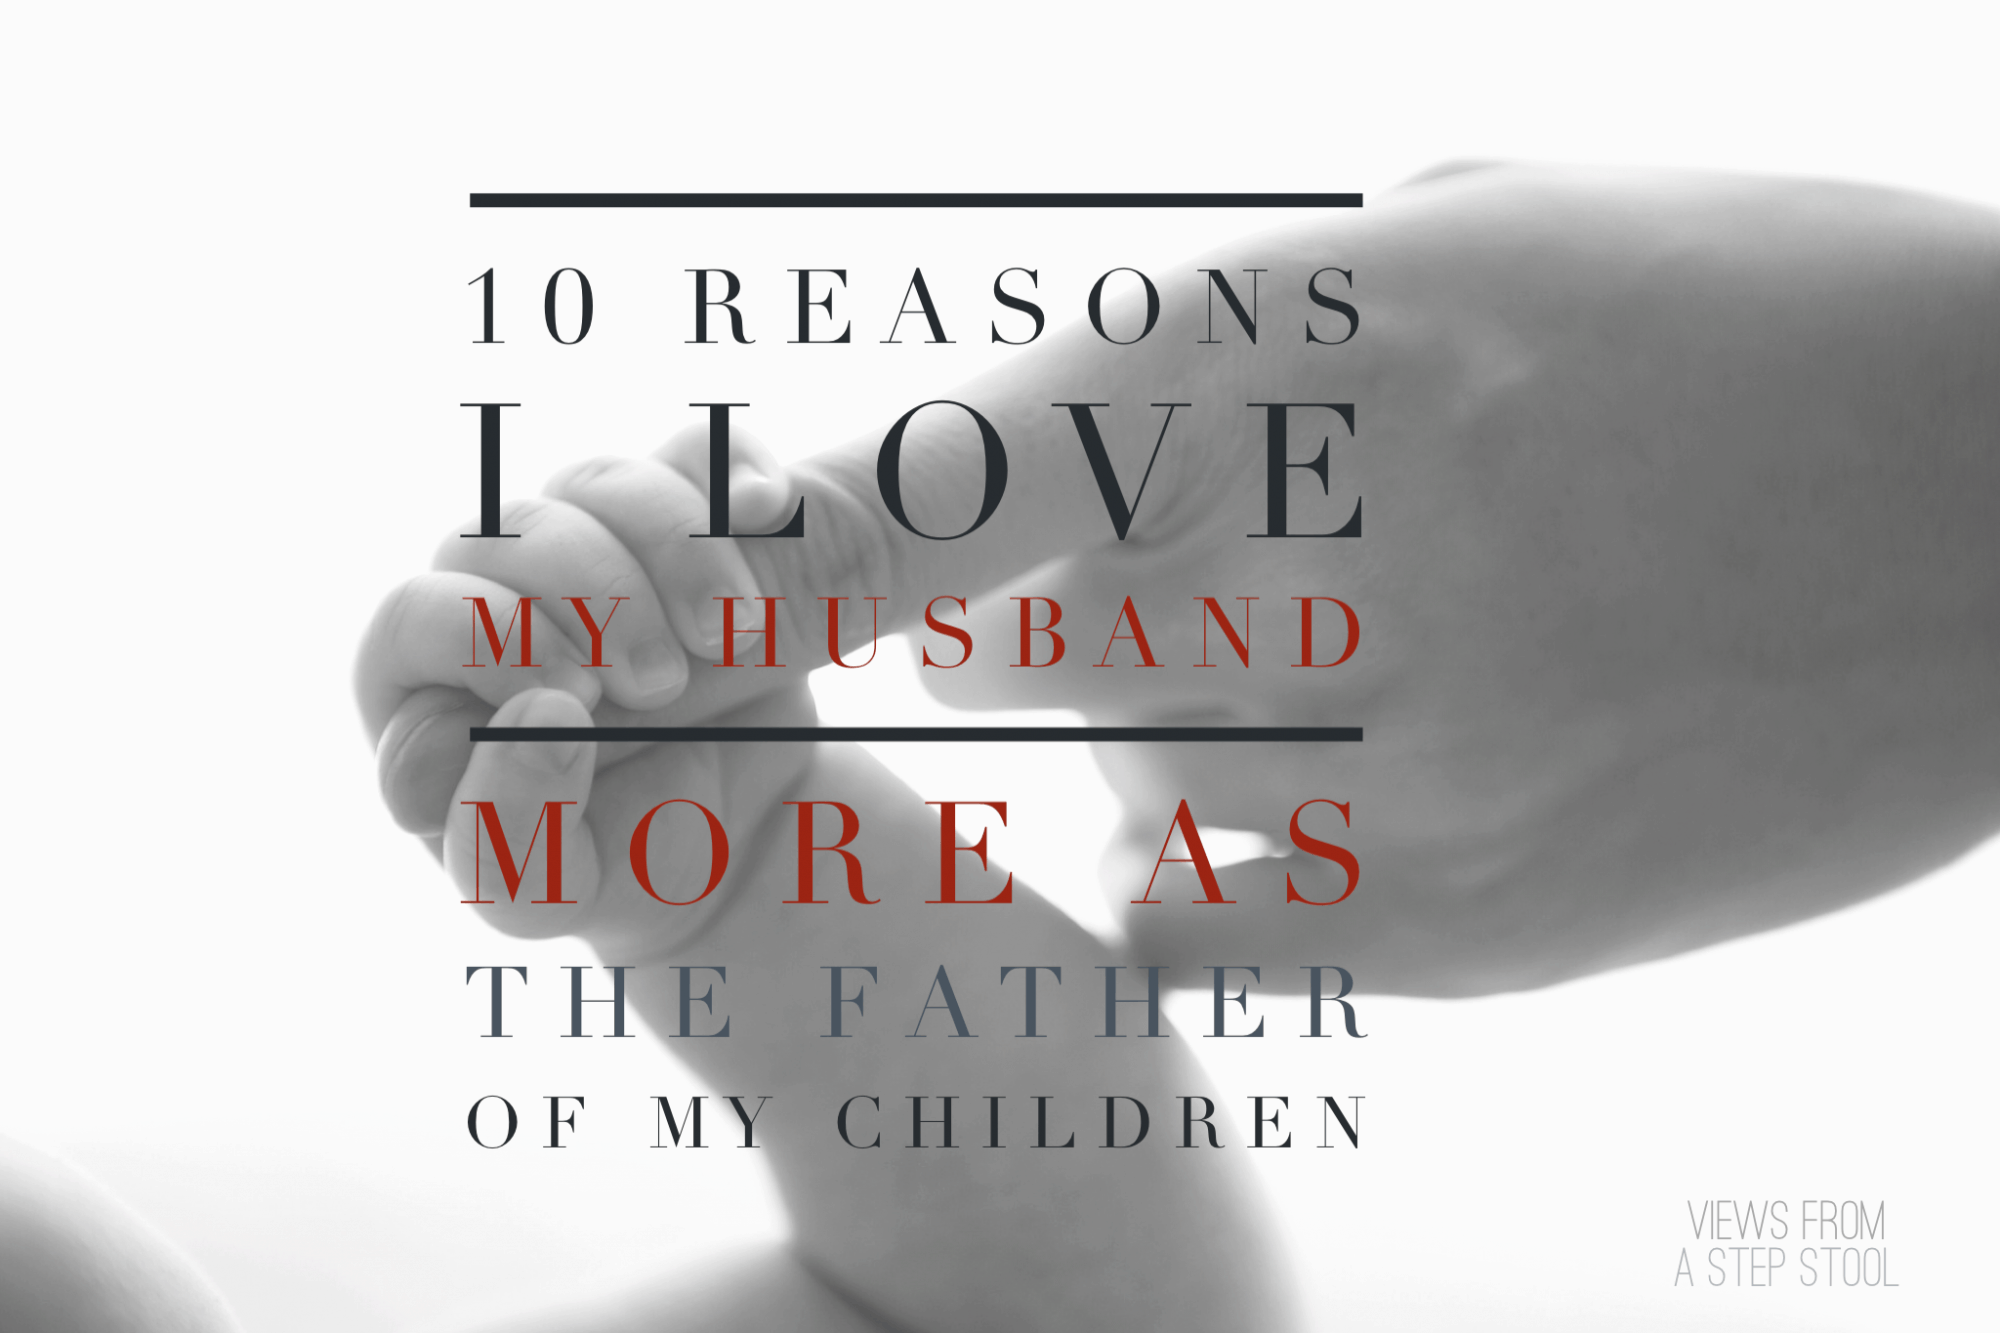 10 Reasons I Love My Husband More as The Father of My Children